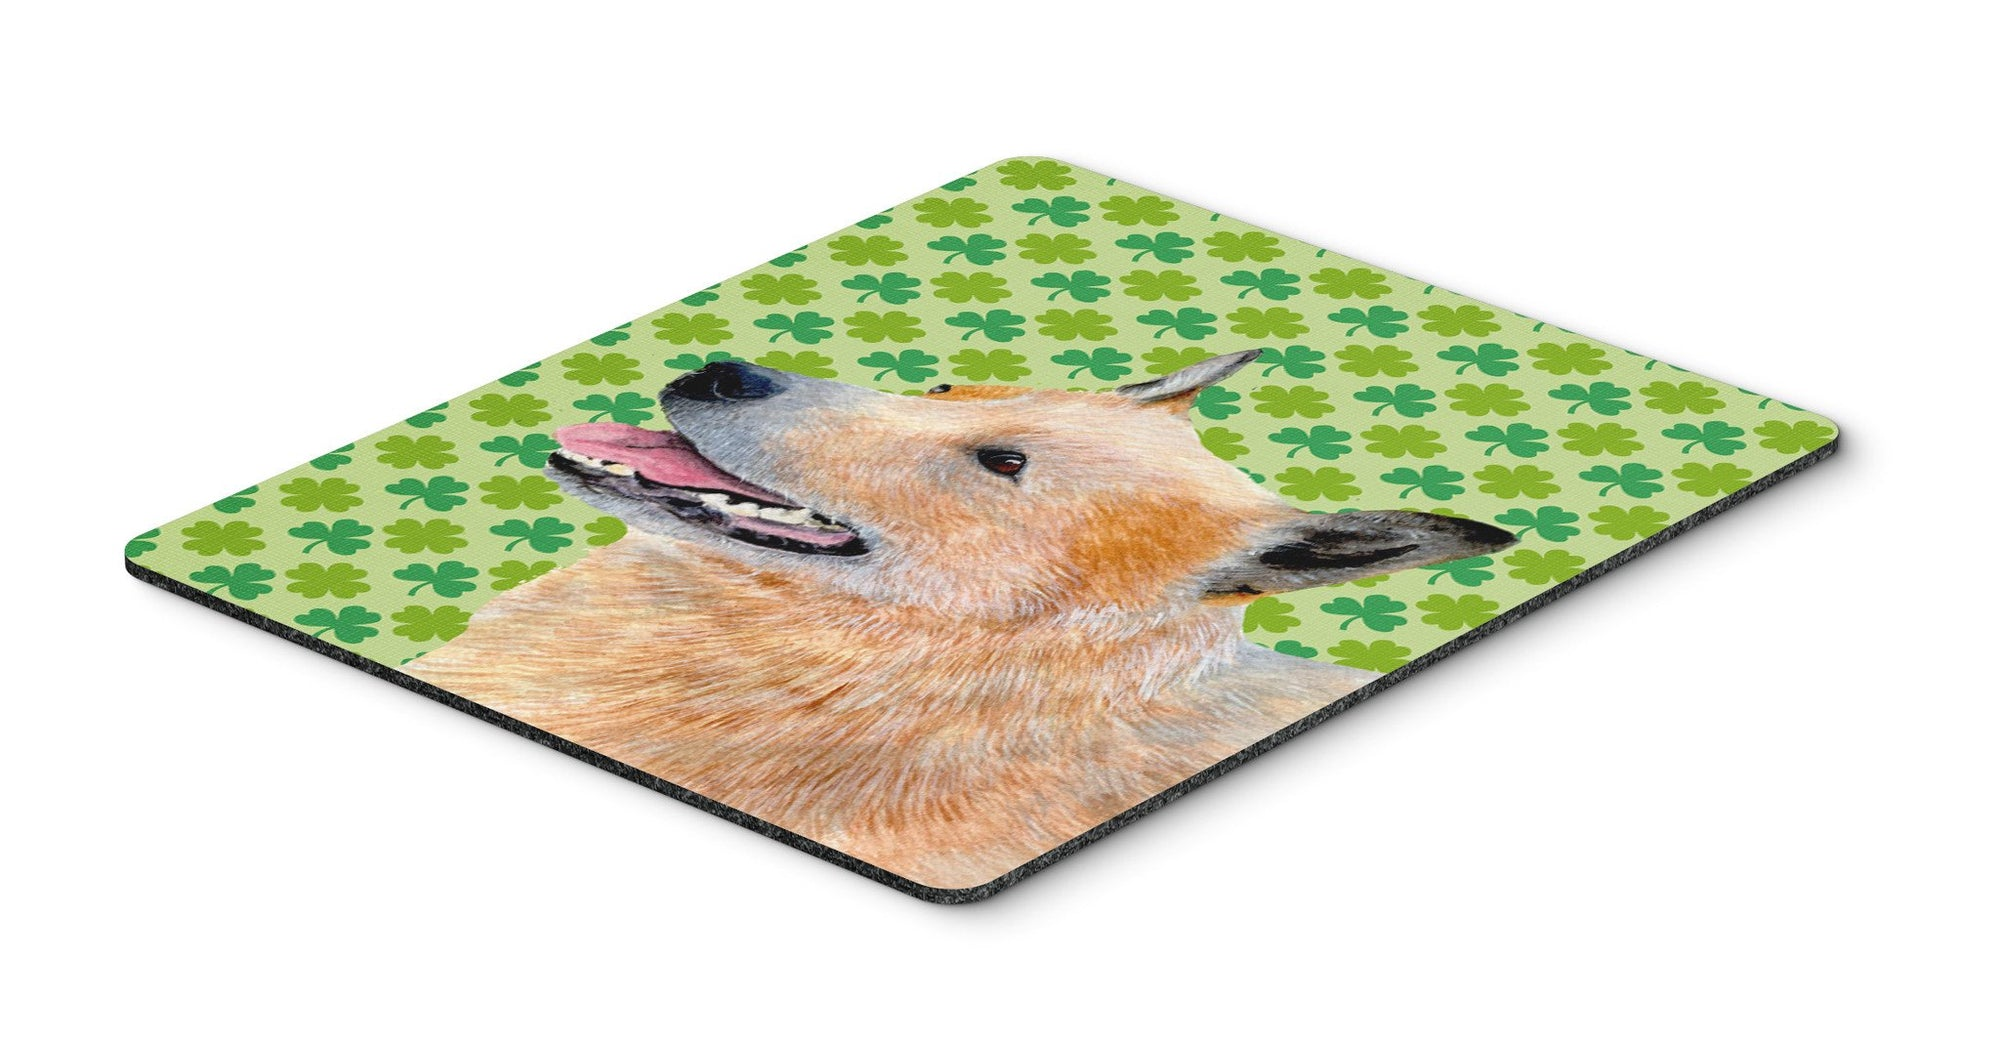 Australian Cattle Dog St. Patrick's Day Shamrock Mouse Pad, Hot Pad or Trivet by Caroline's Treasures